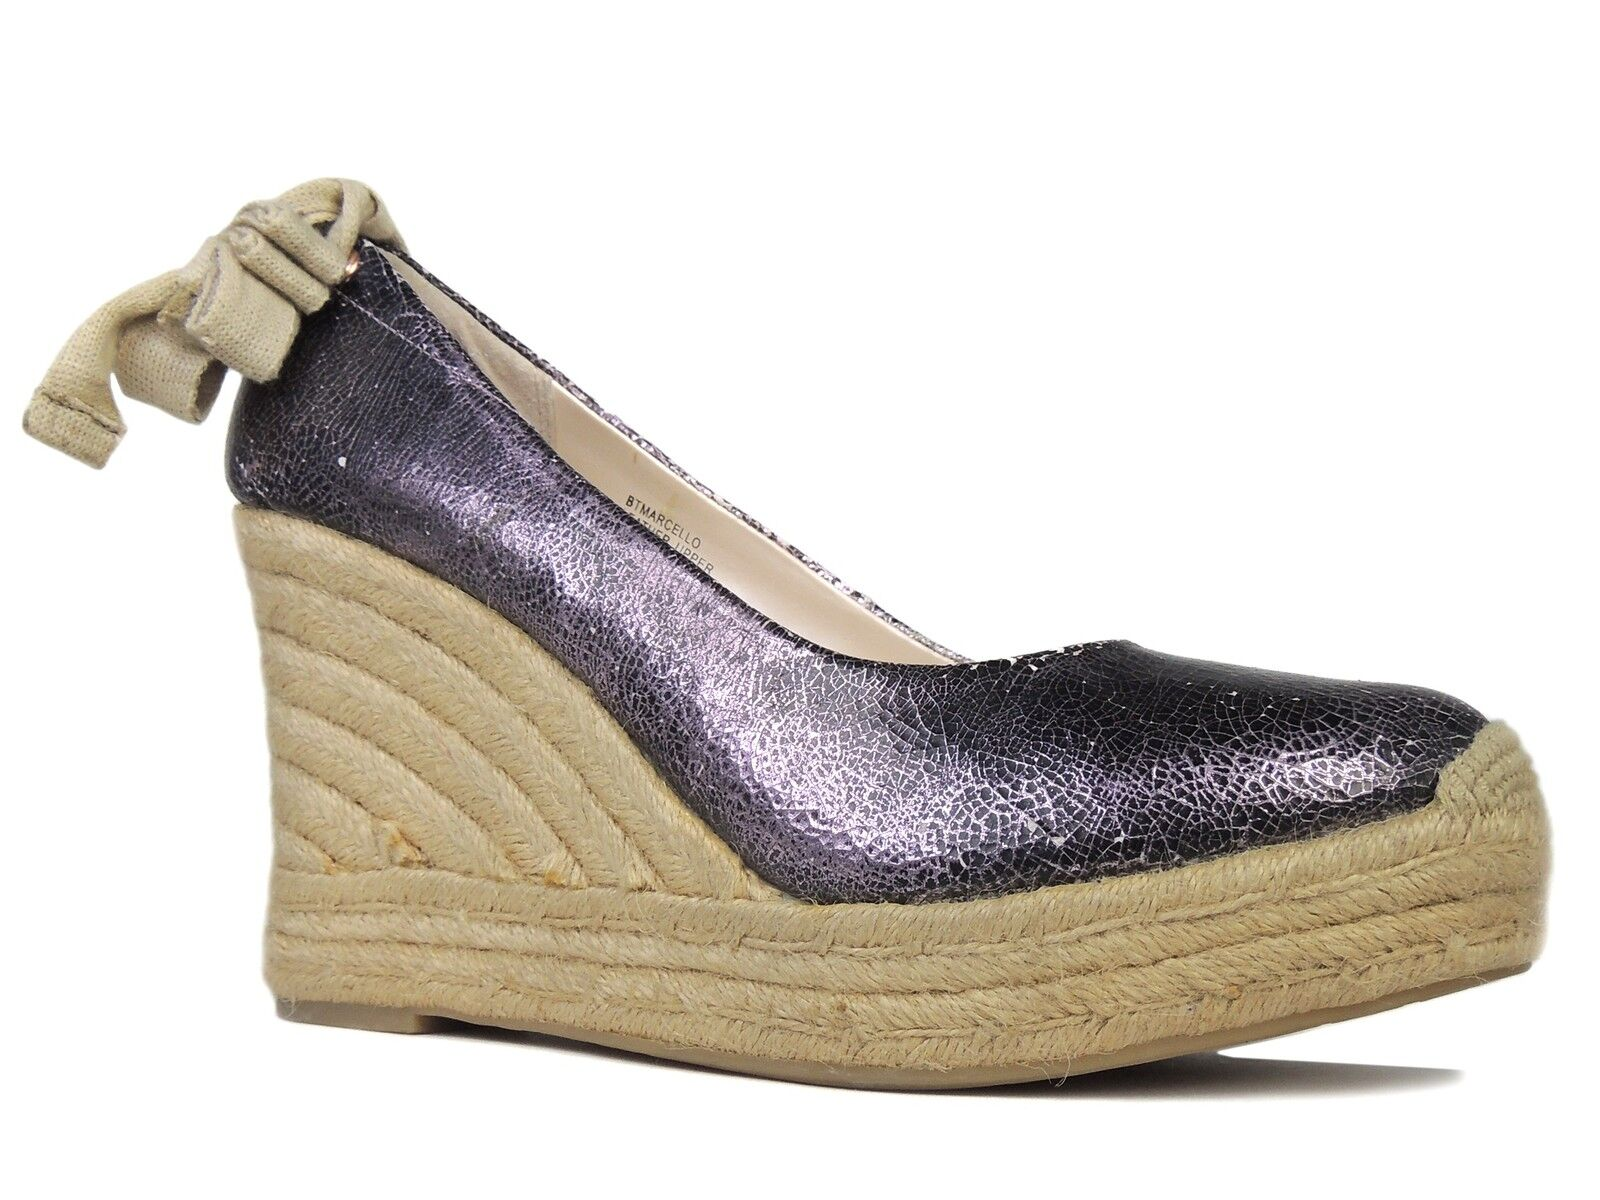 Boutique 9 Donna  Marcello Espadrille Espadrille Espadrille Wedge Sandals viola Leather Dimensione 8.5 M 524d94